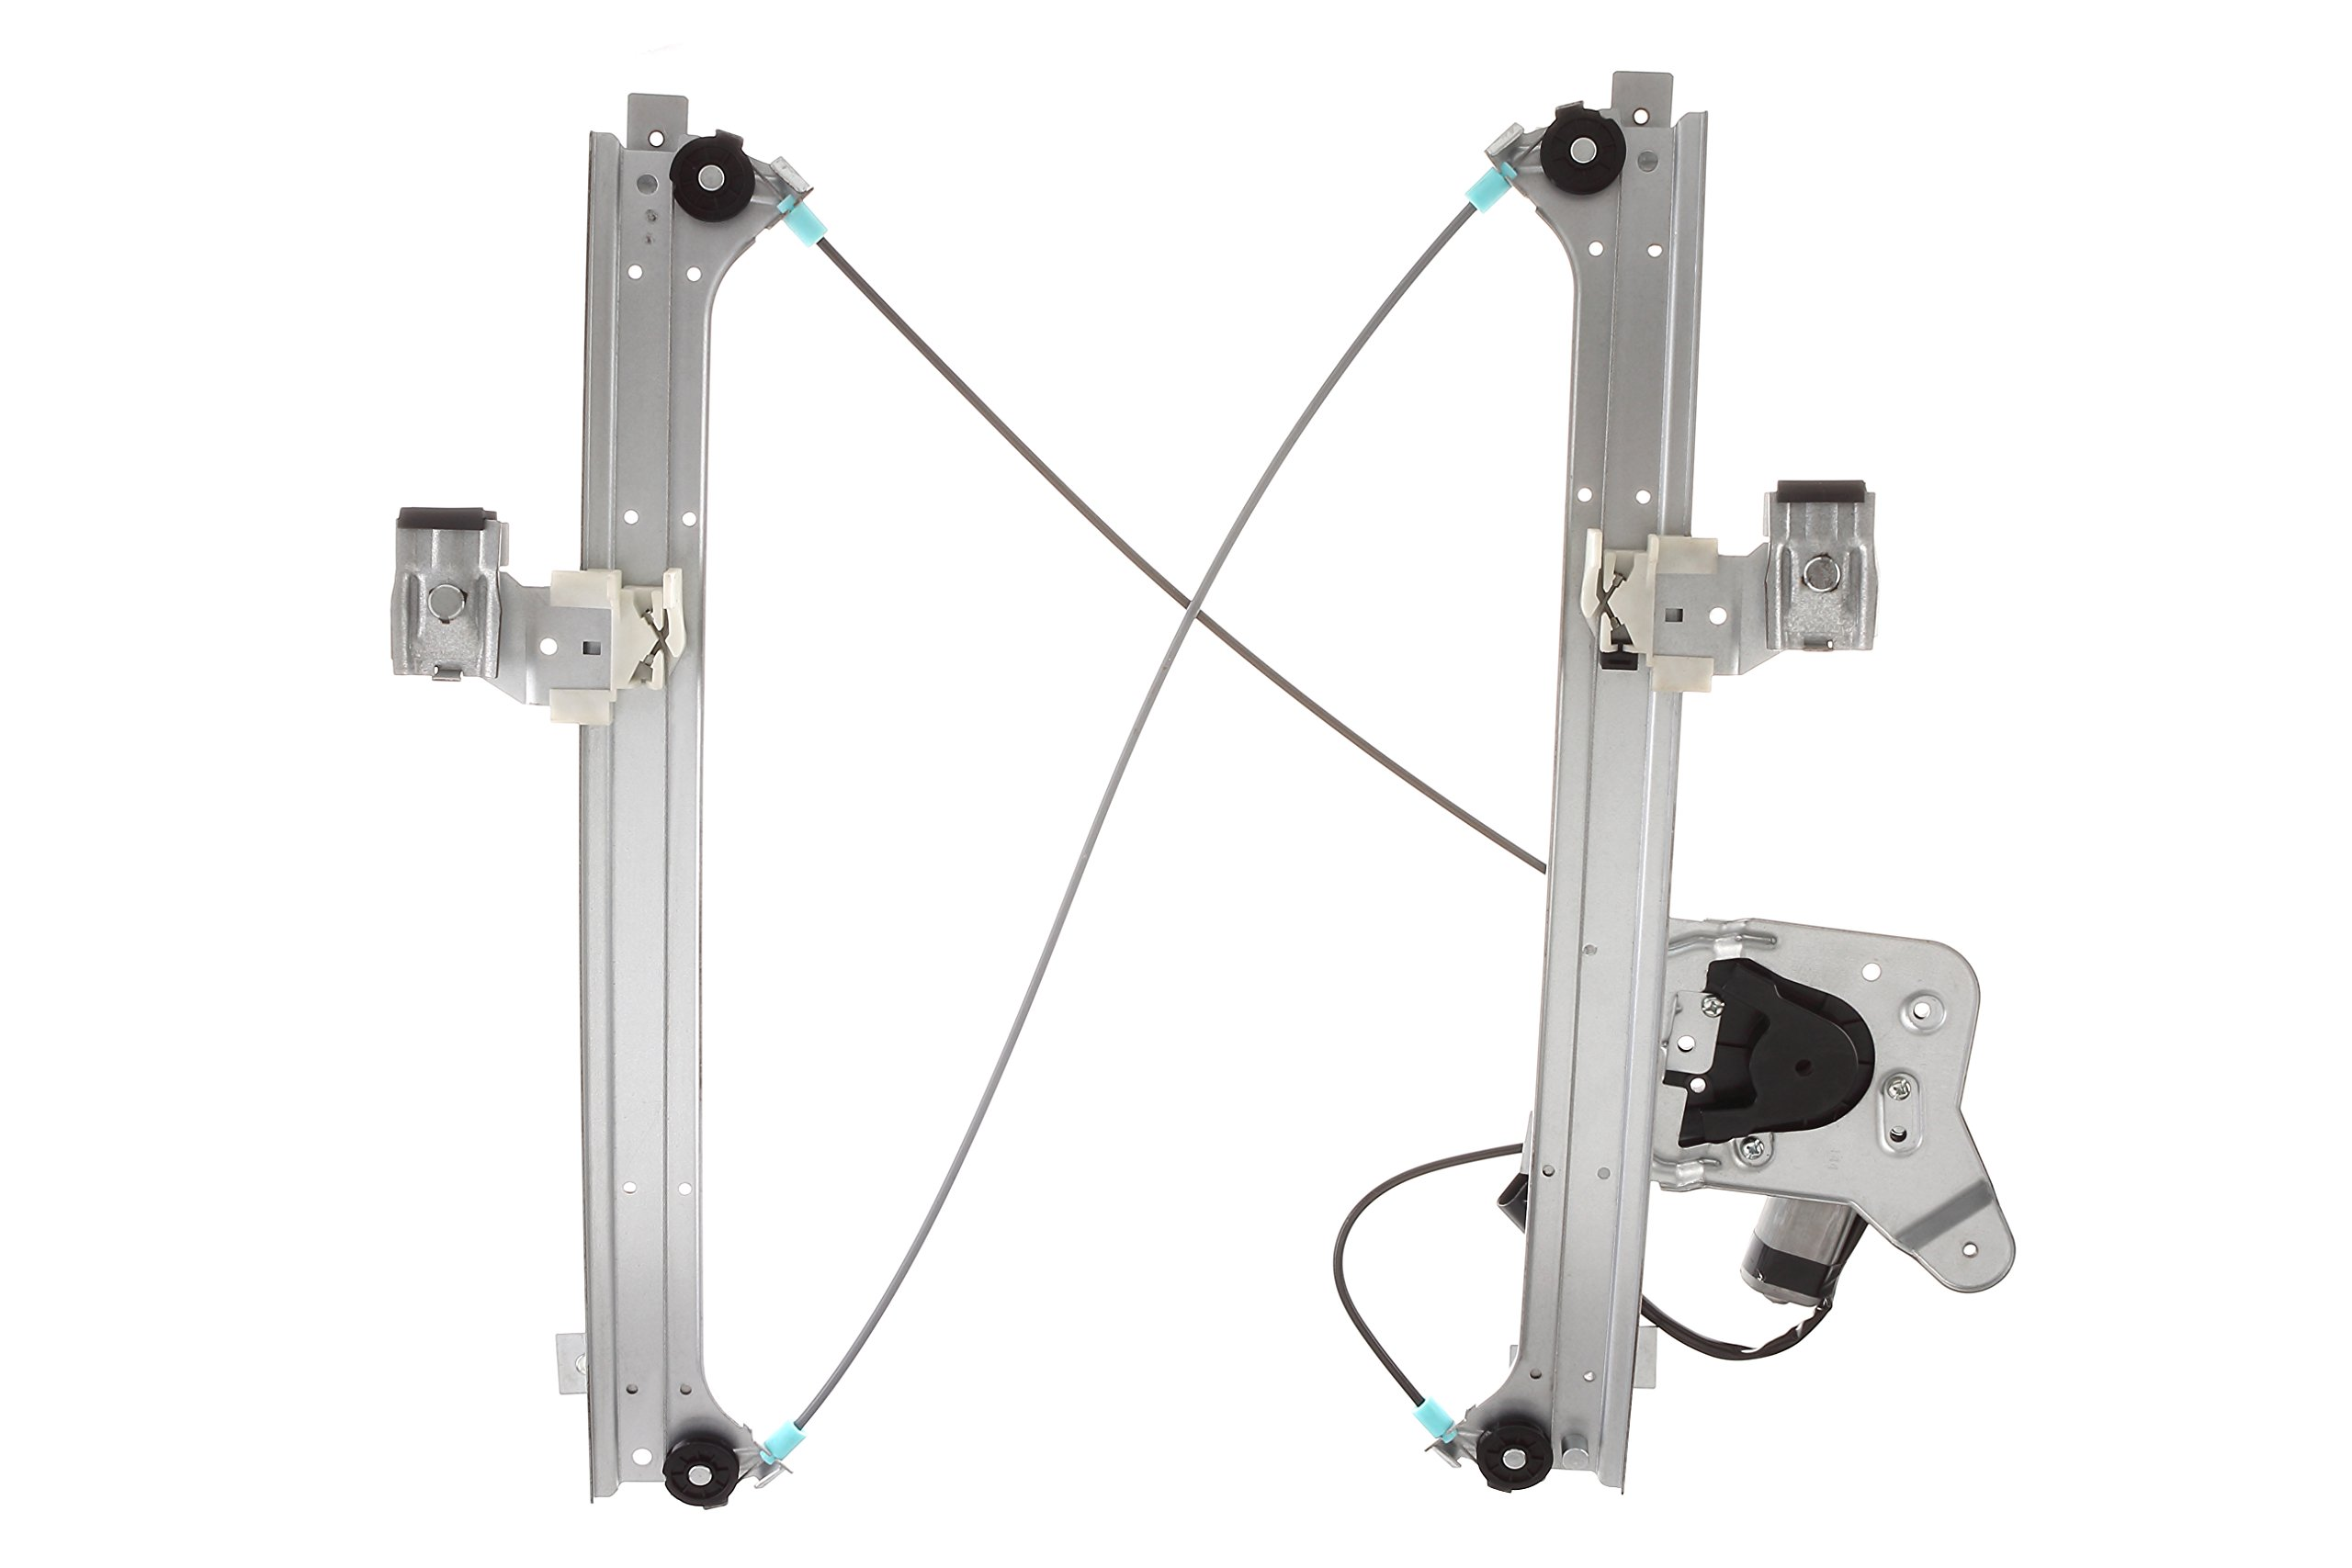 741-579 Rear Right Passenger Side Replacement Power Window Regulator with Motor Assembly for Chevy Silverado 1500 Classic /& Cadillac Escalade GMC Sierra 1500 Classic 99-07 Silver